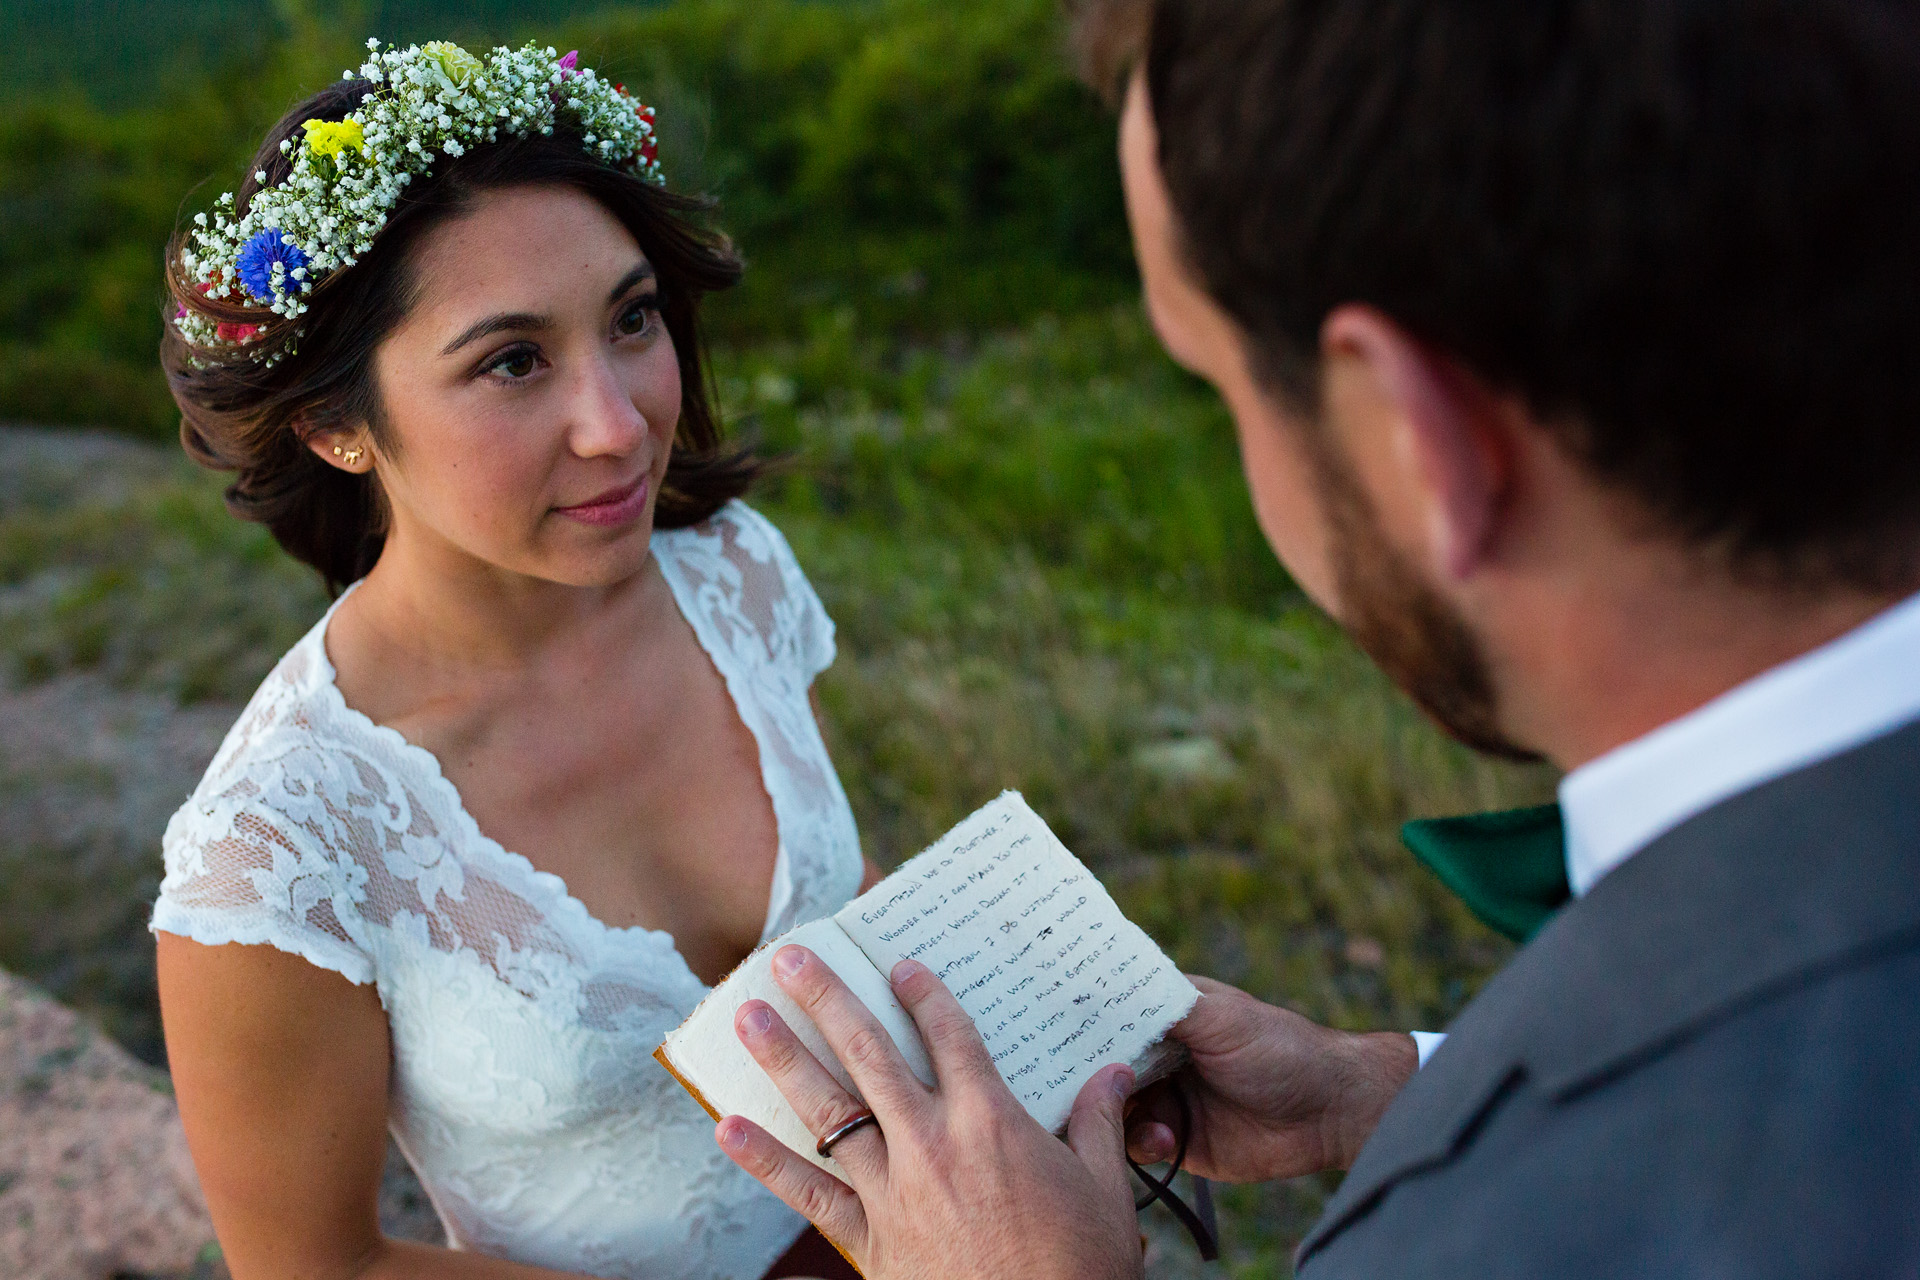 Kate Crabtree of Maine photographed this outdoor wedding vow exchange between the bride and groom